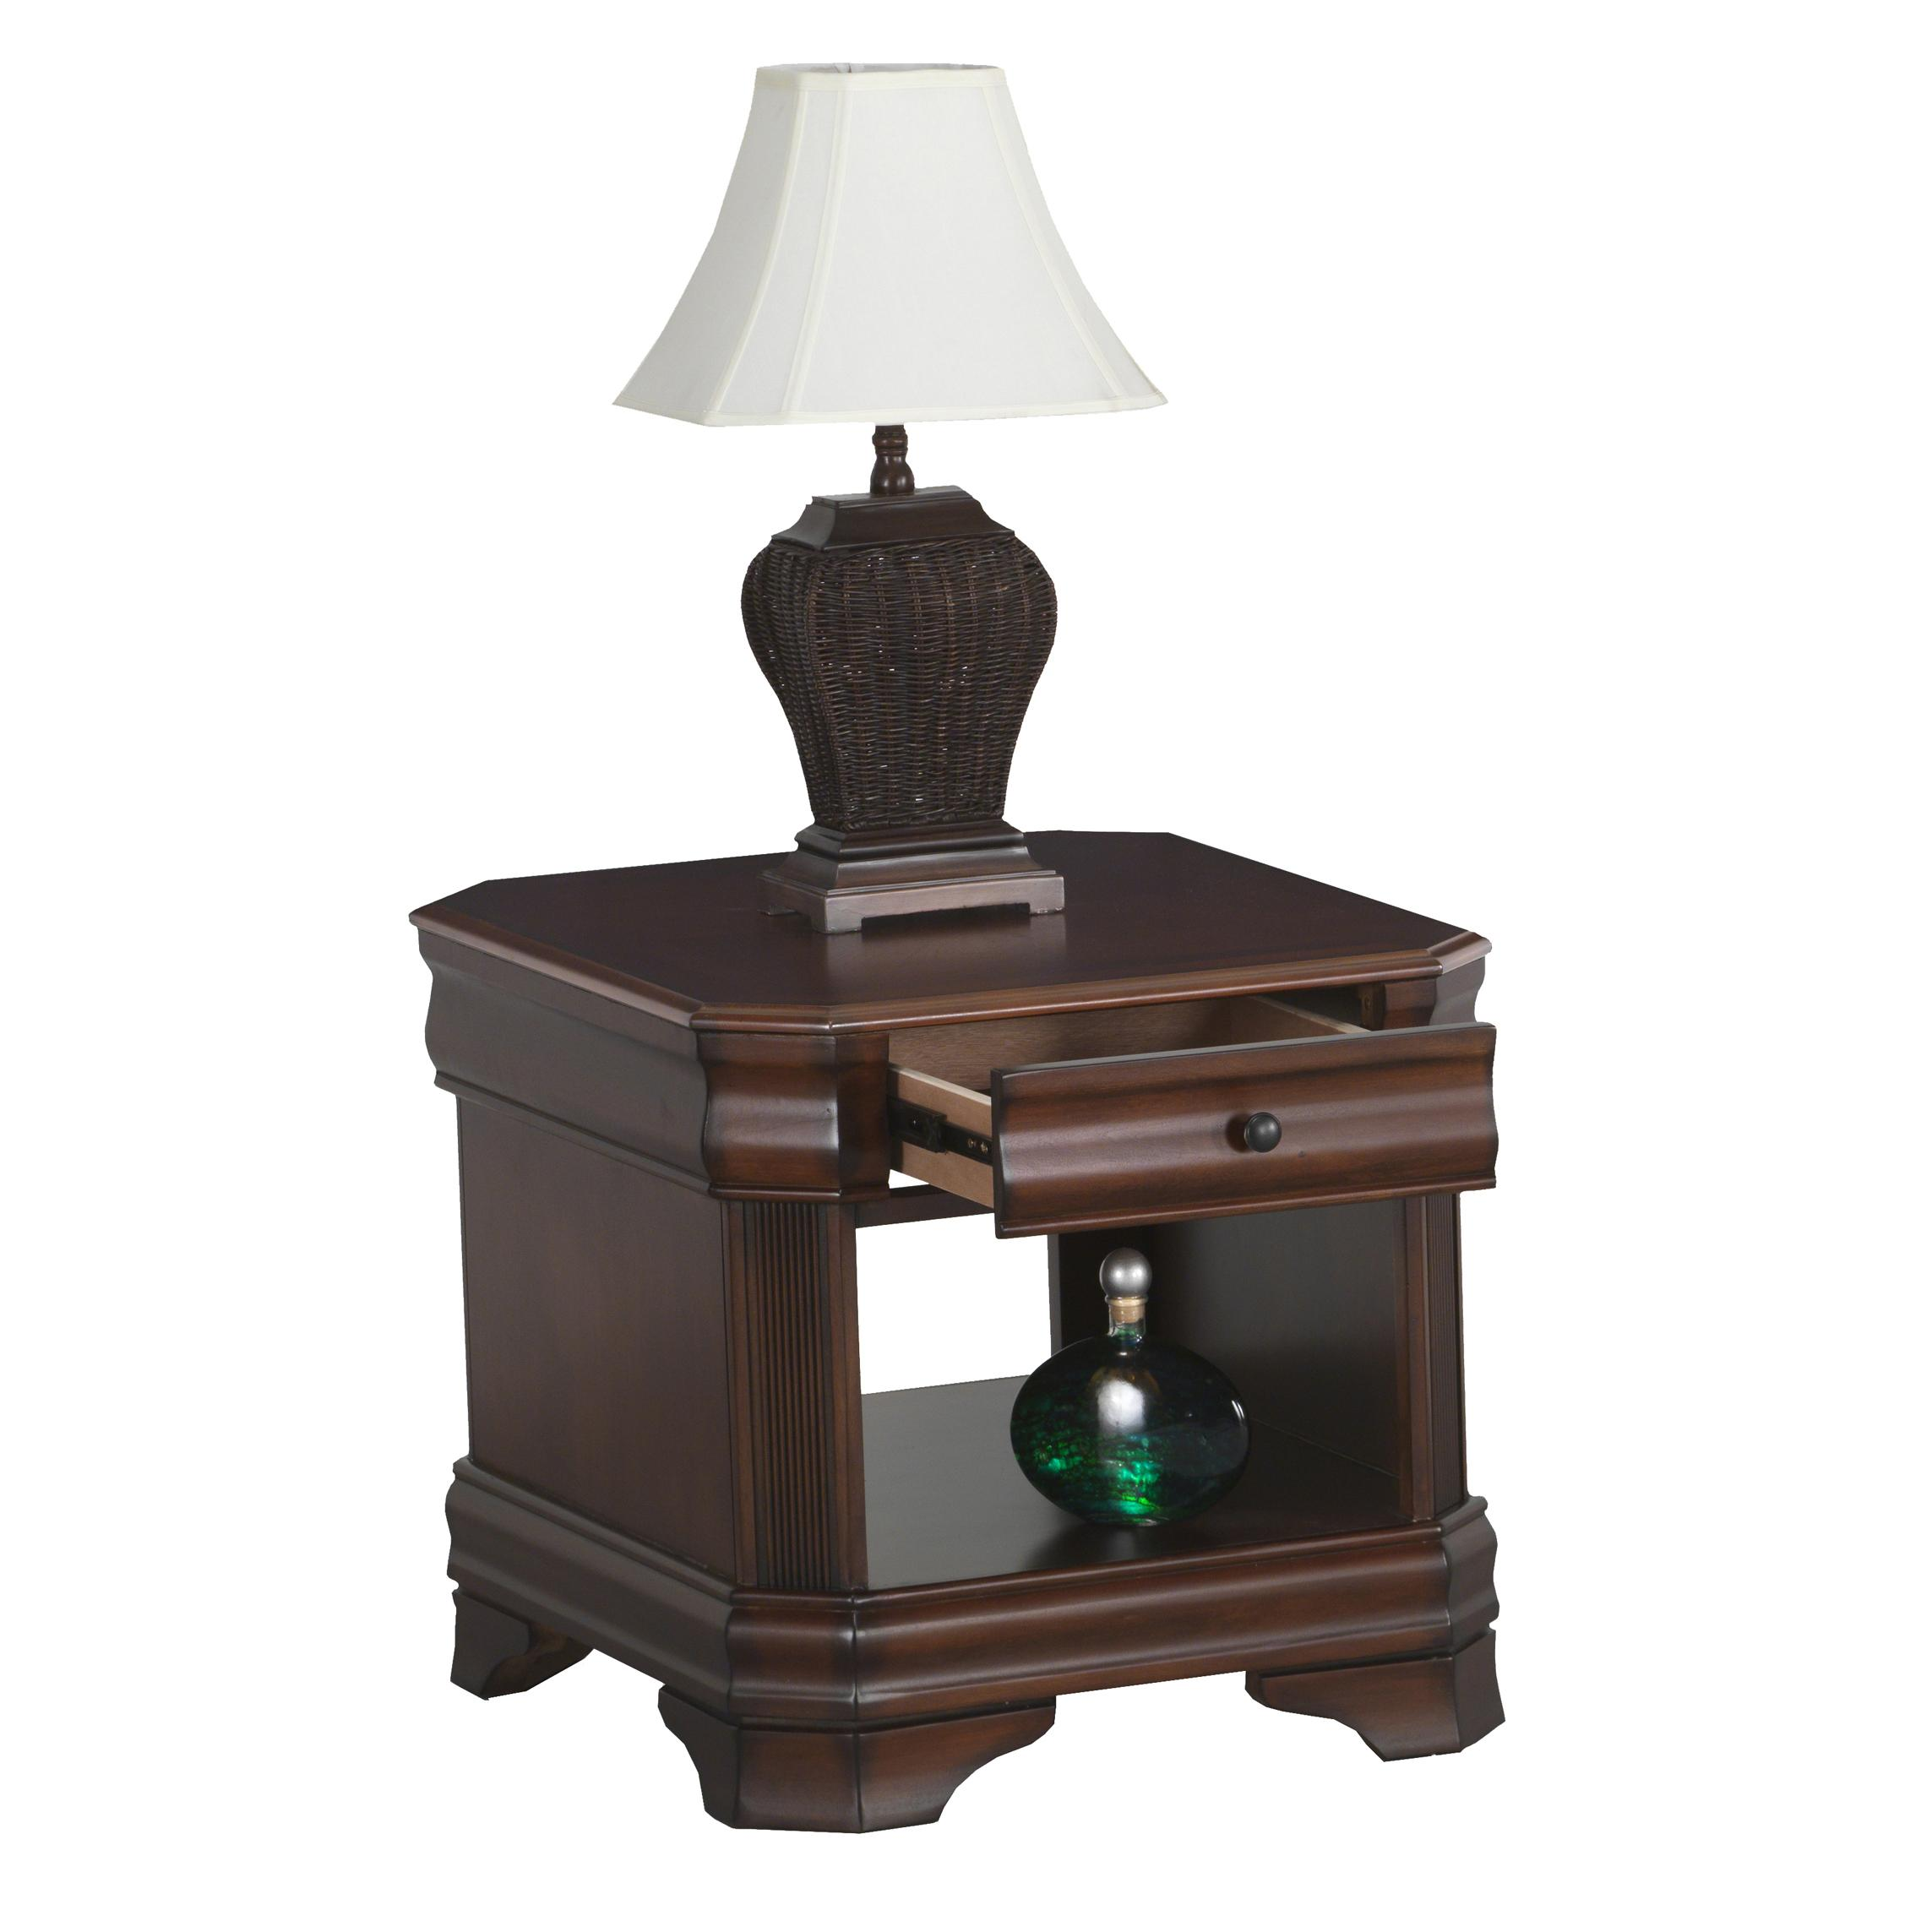 New Classic Sheridan End Table with Drawer and Base Shelf - Royal Furniture - End Table